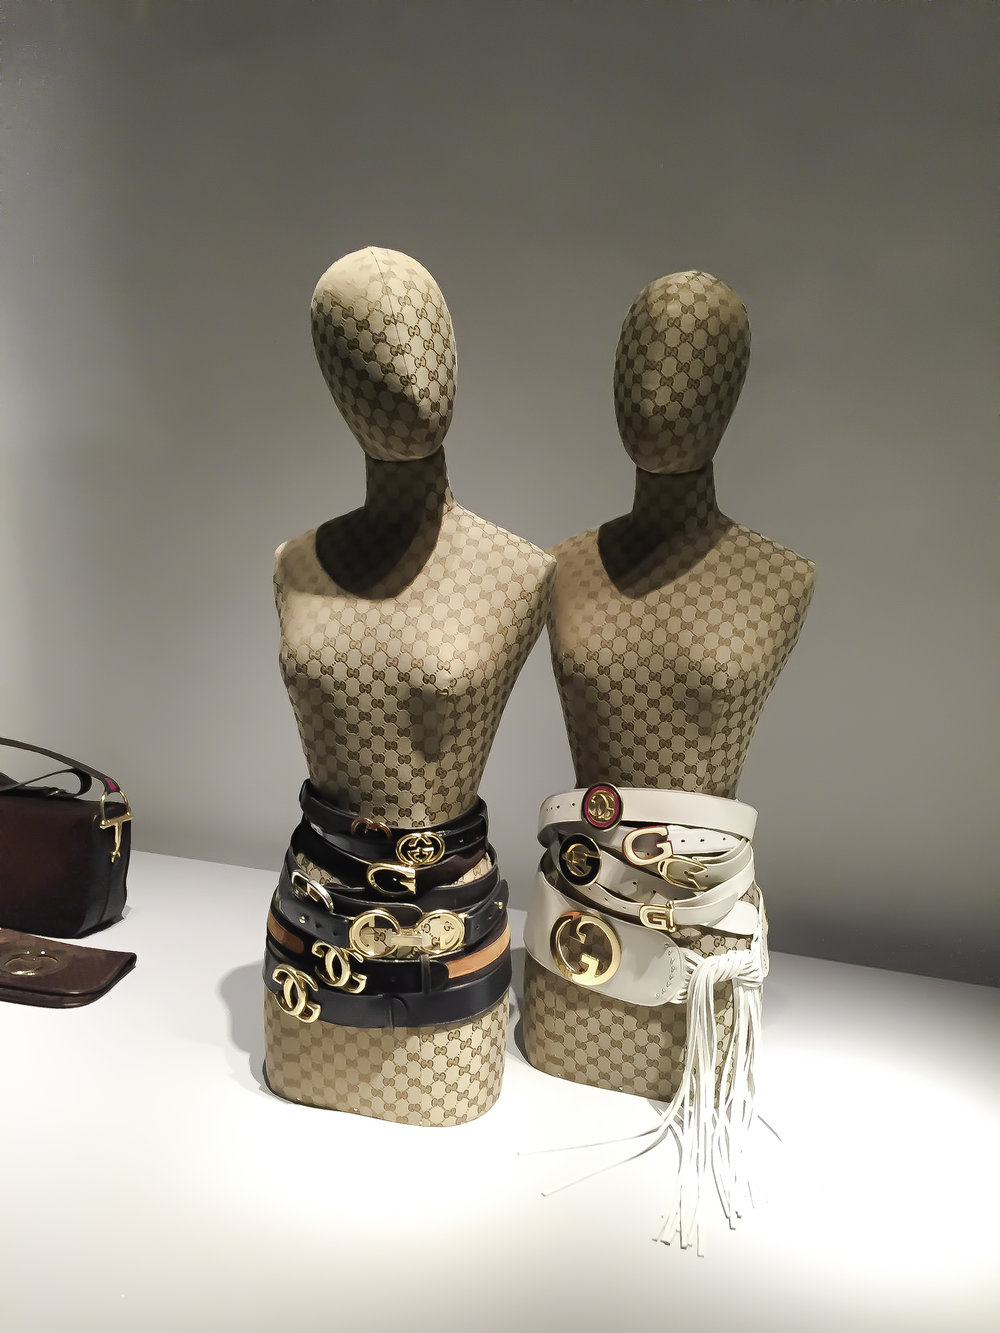 Inside the Gucci museum